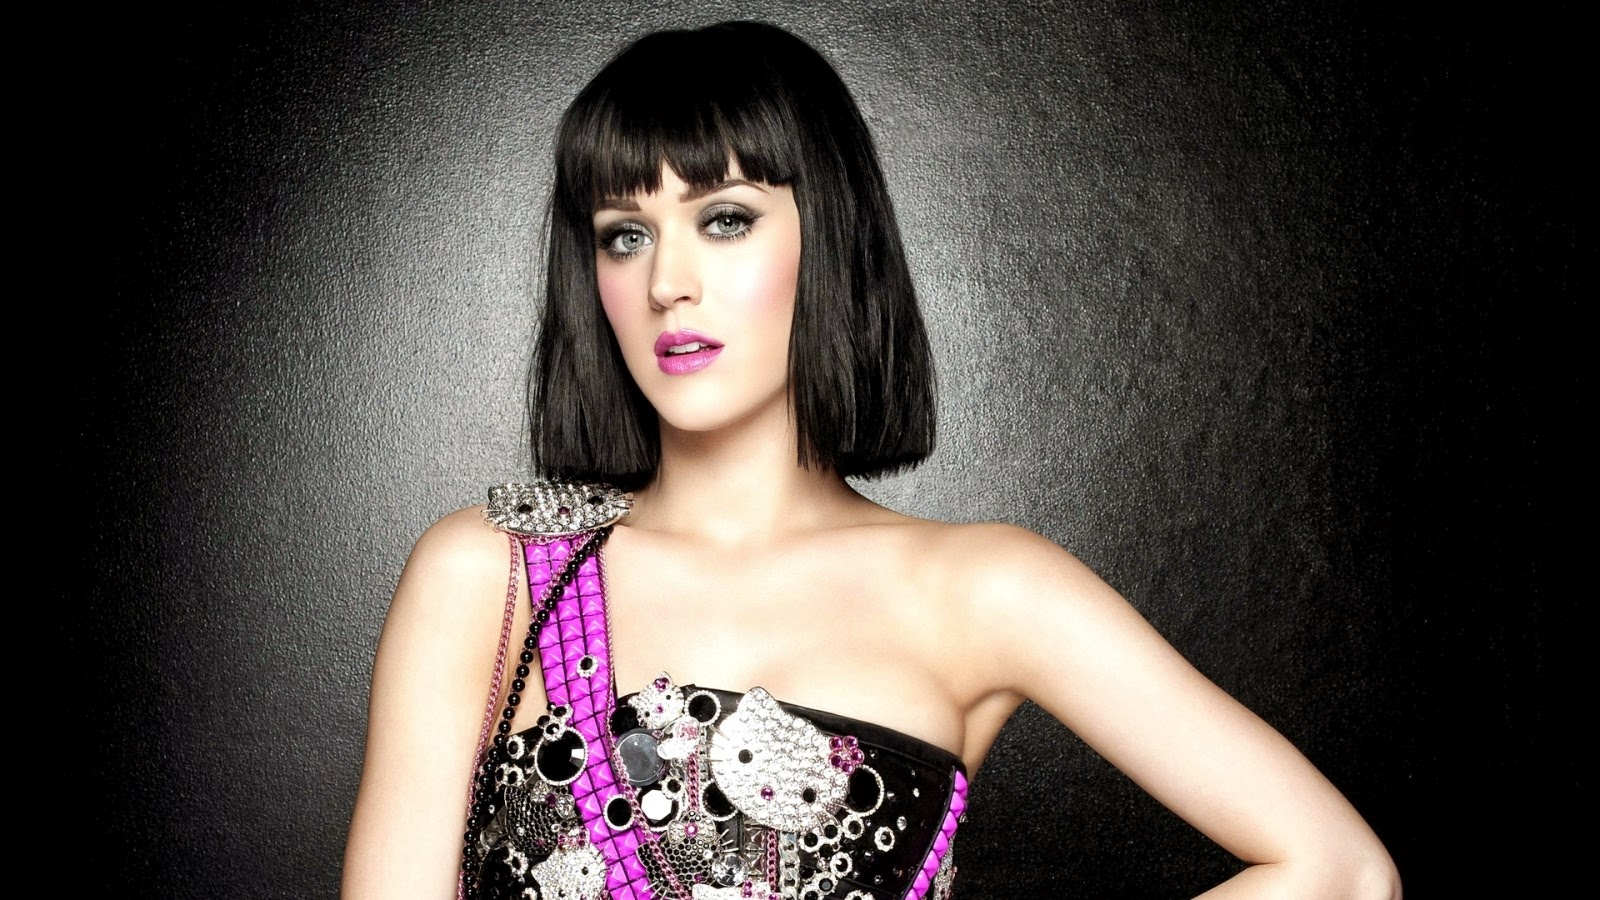 katy perry wallpaper 1080p - photo #1